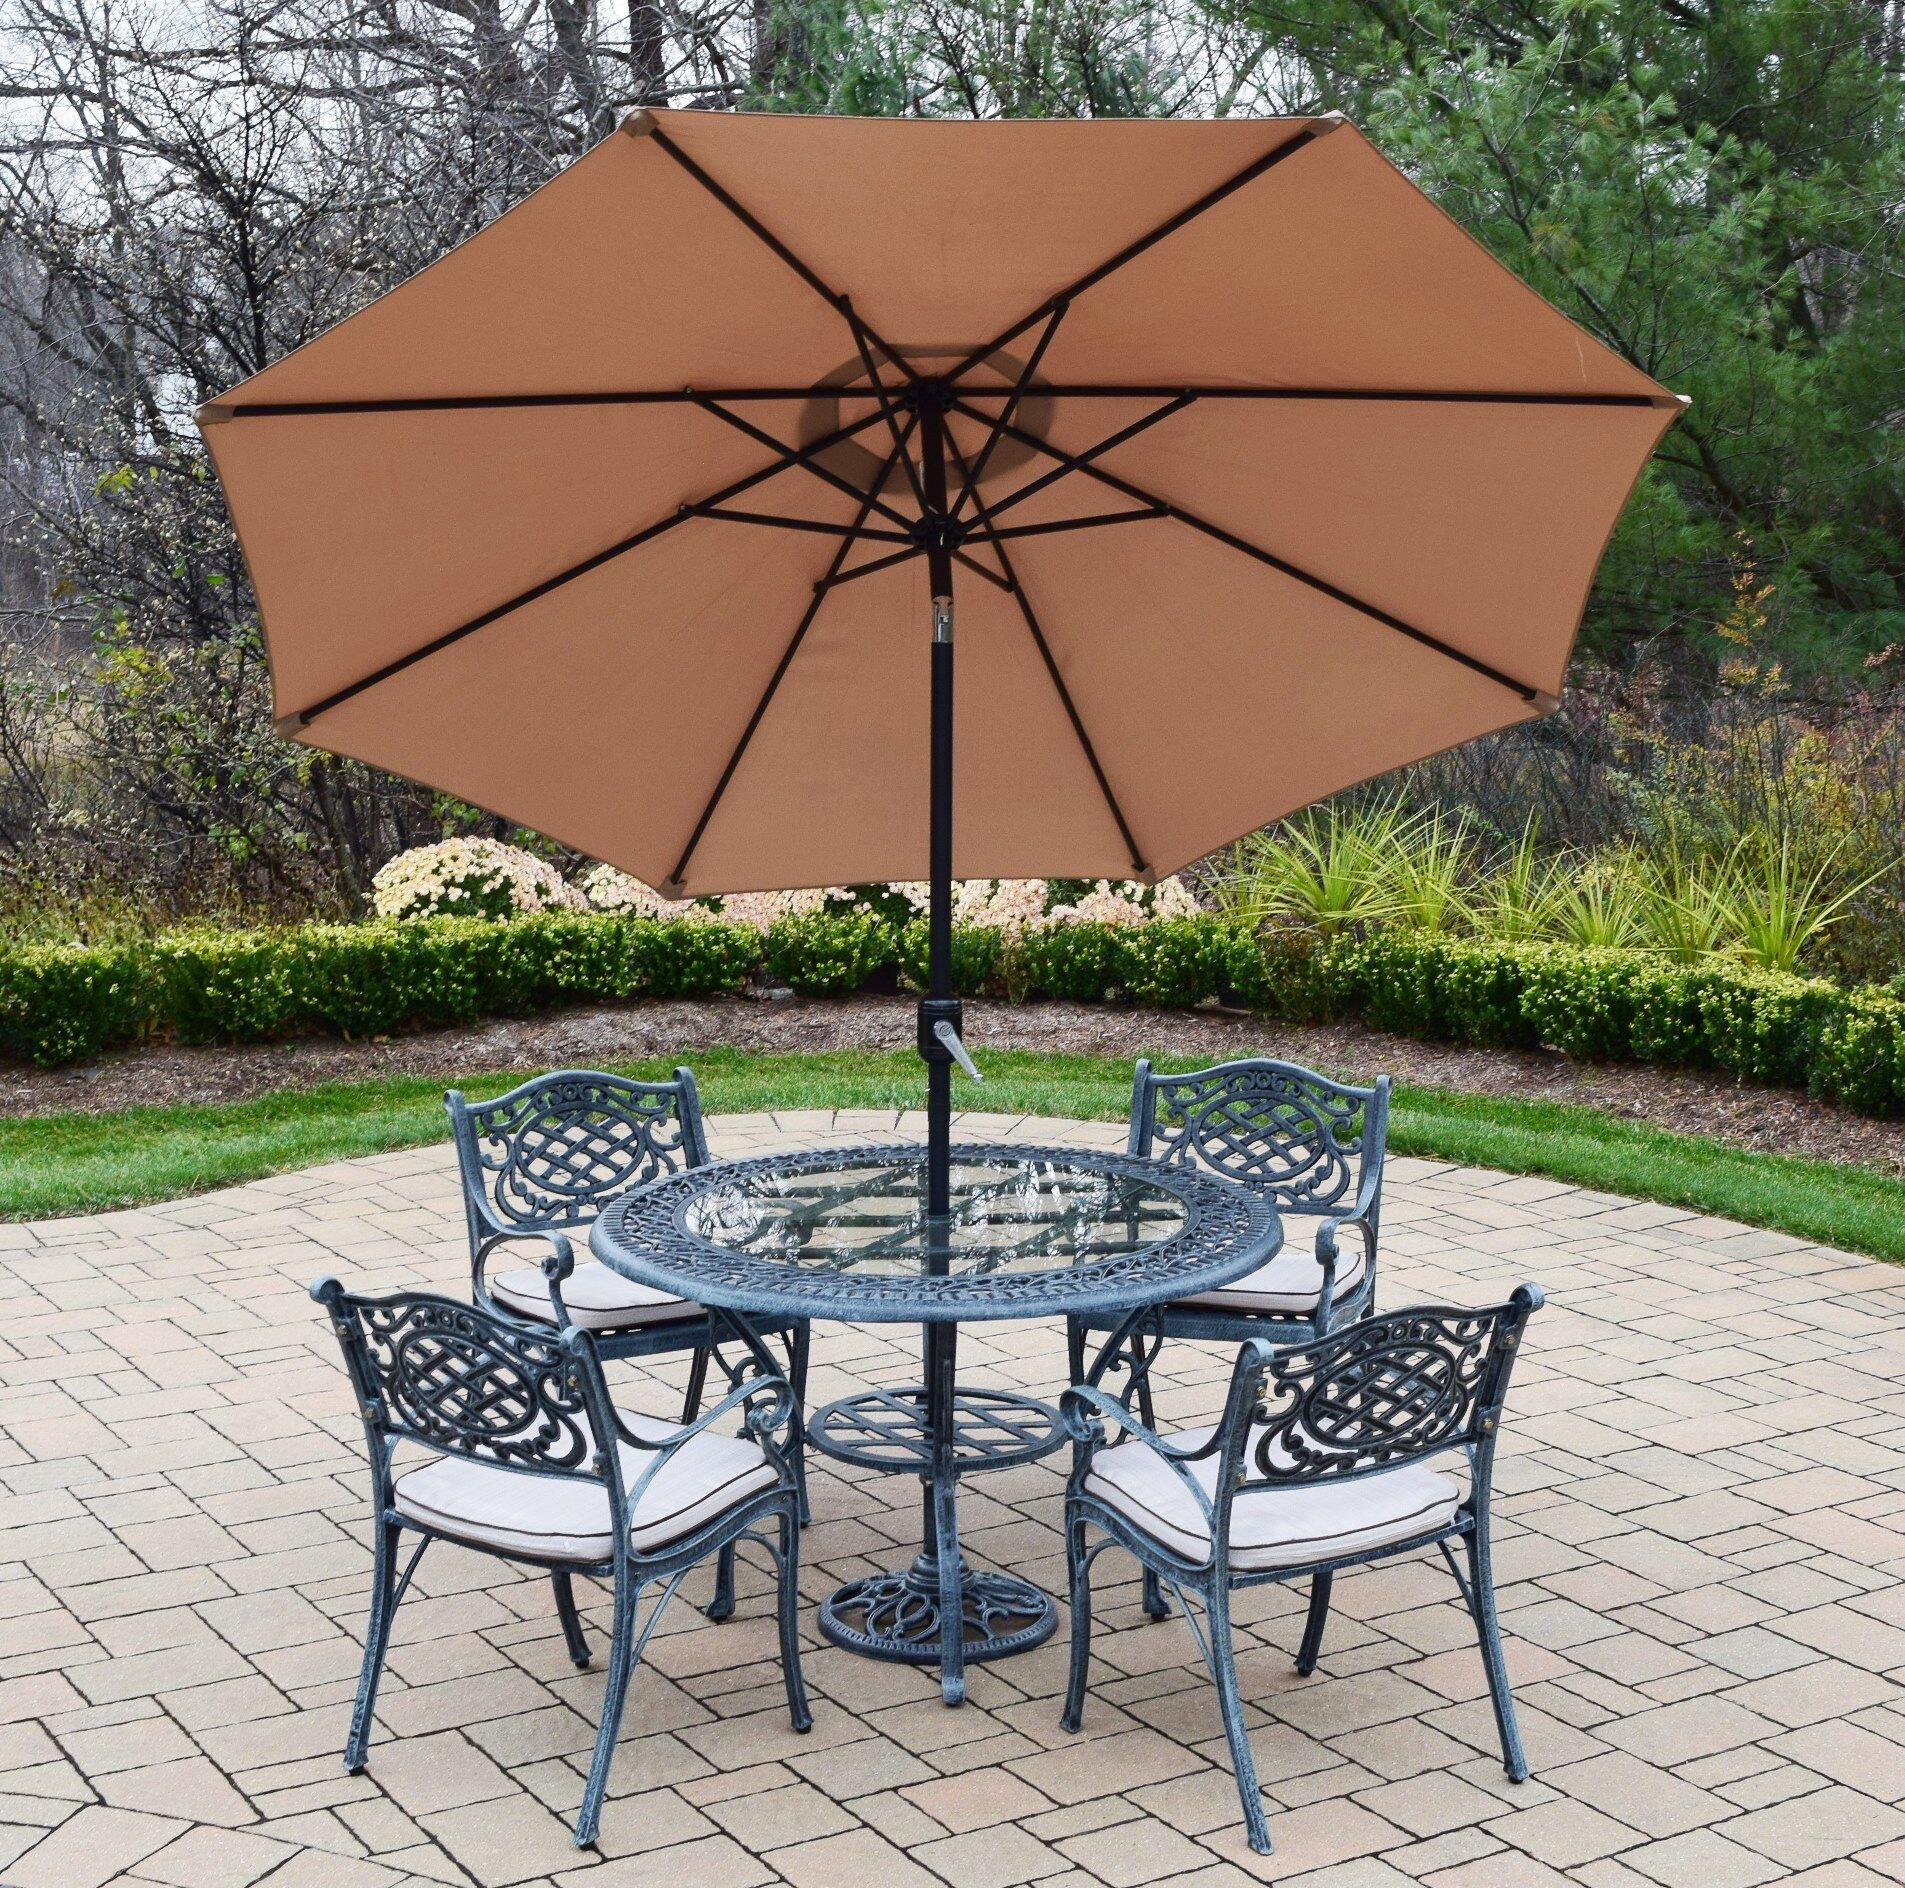 Mississippi 5 Piece Dining Set with Cushions Umbrella Color: Brown, Cushion Fabric: Sunbrella - Tan